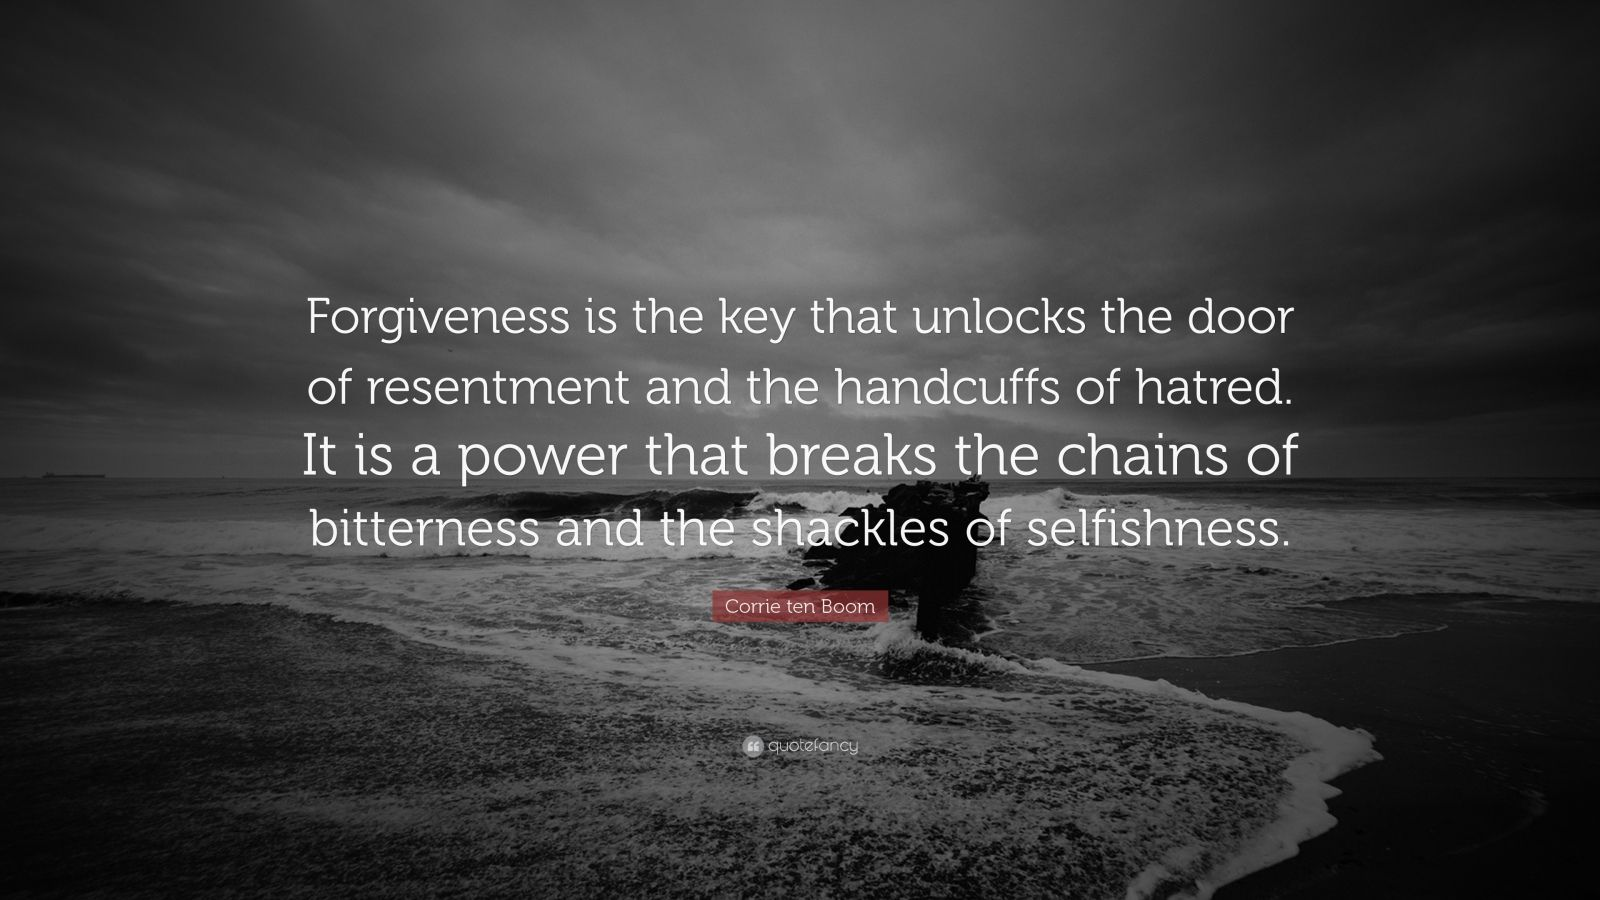 Hd Wallpapers Motivational Quotes Forgiveness Quotes 40 Wallpapers Quotefancy